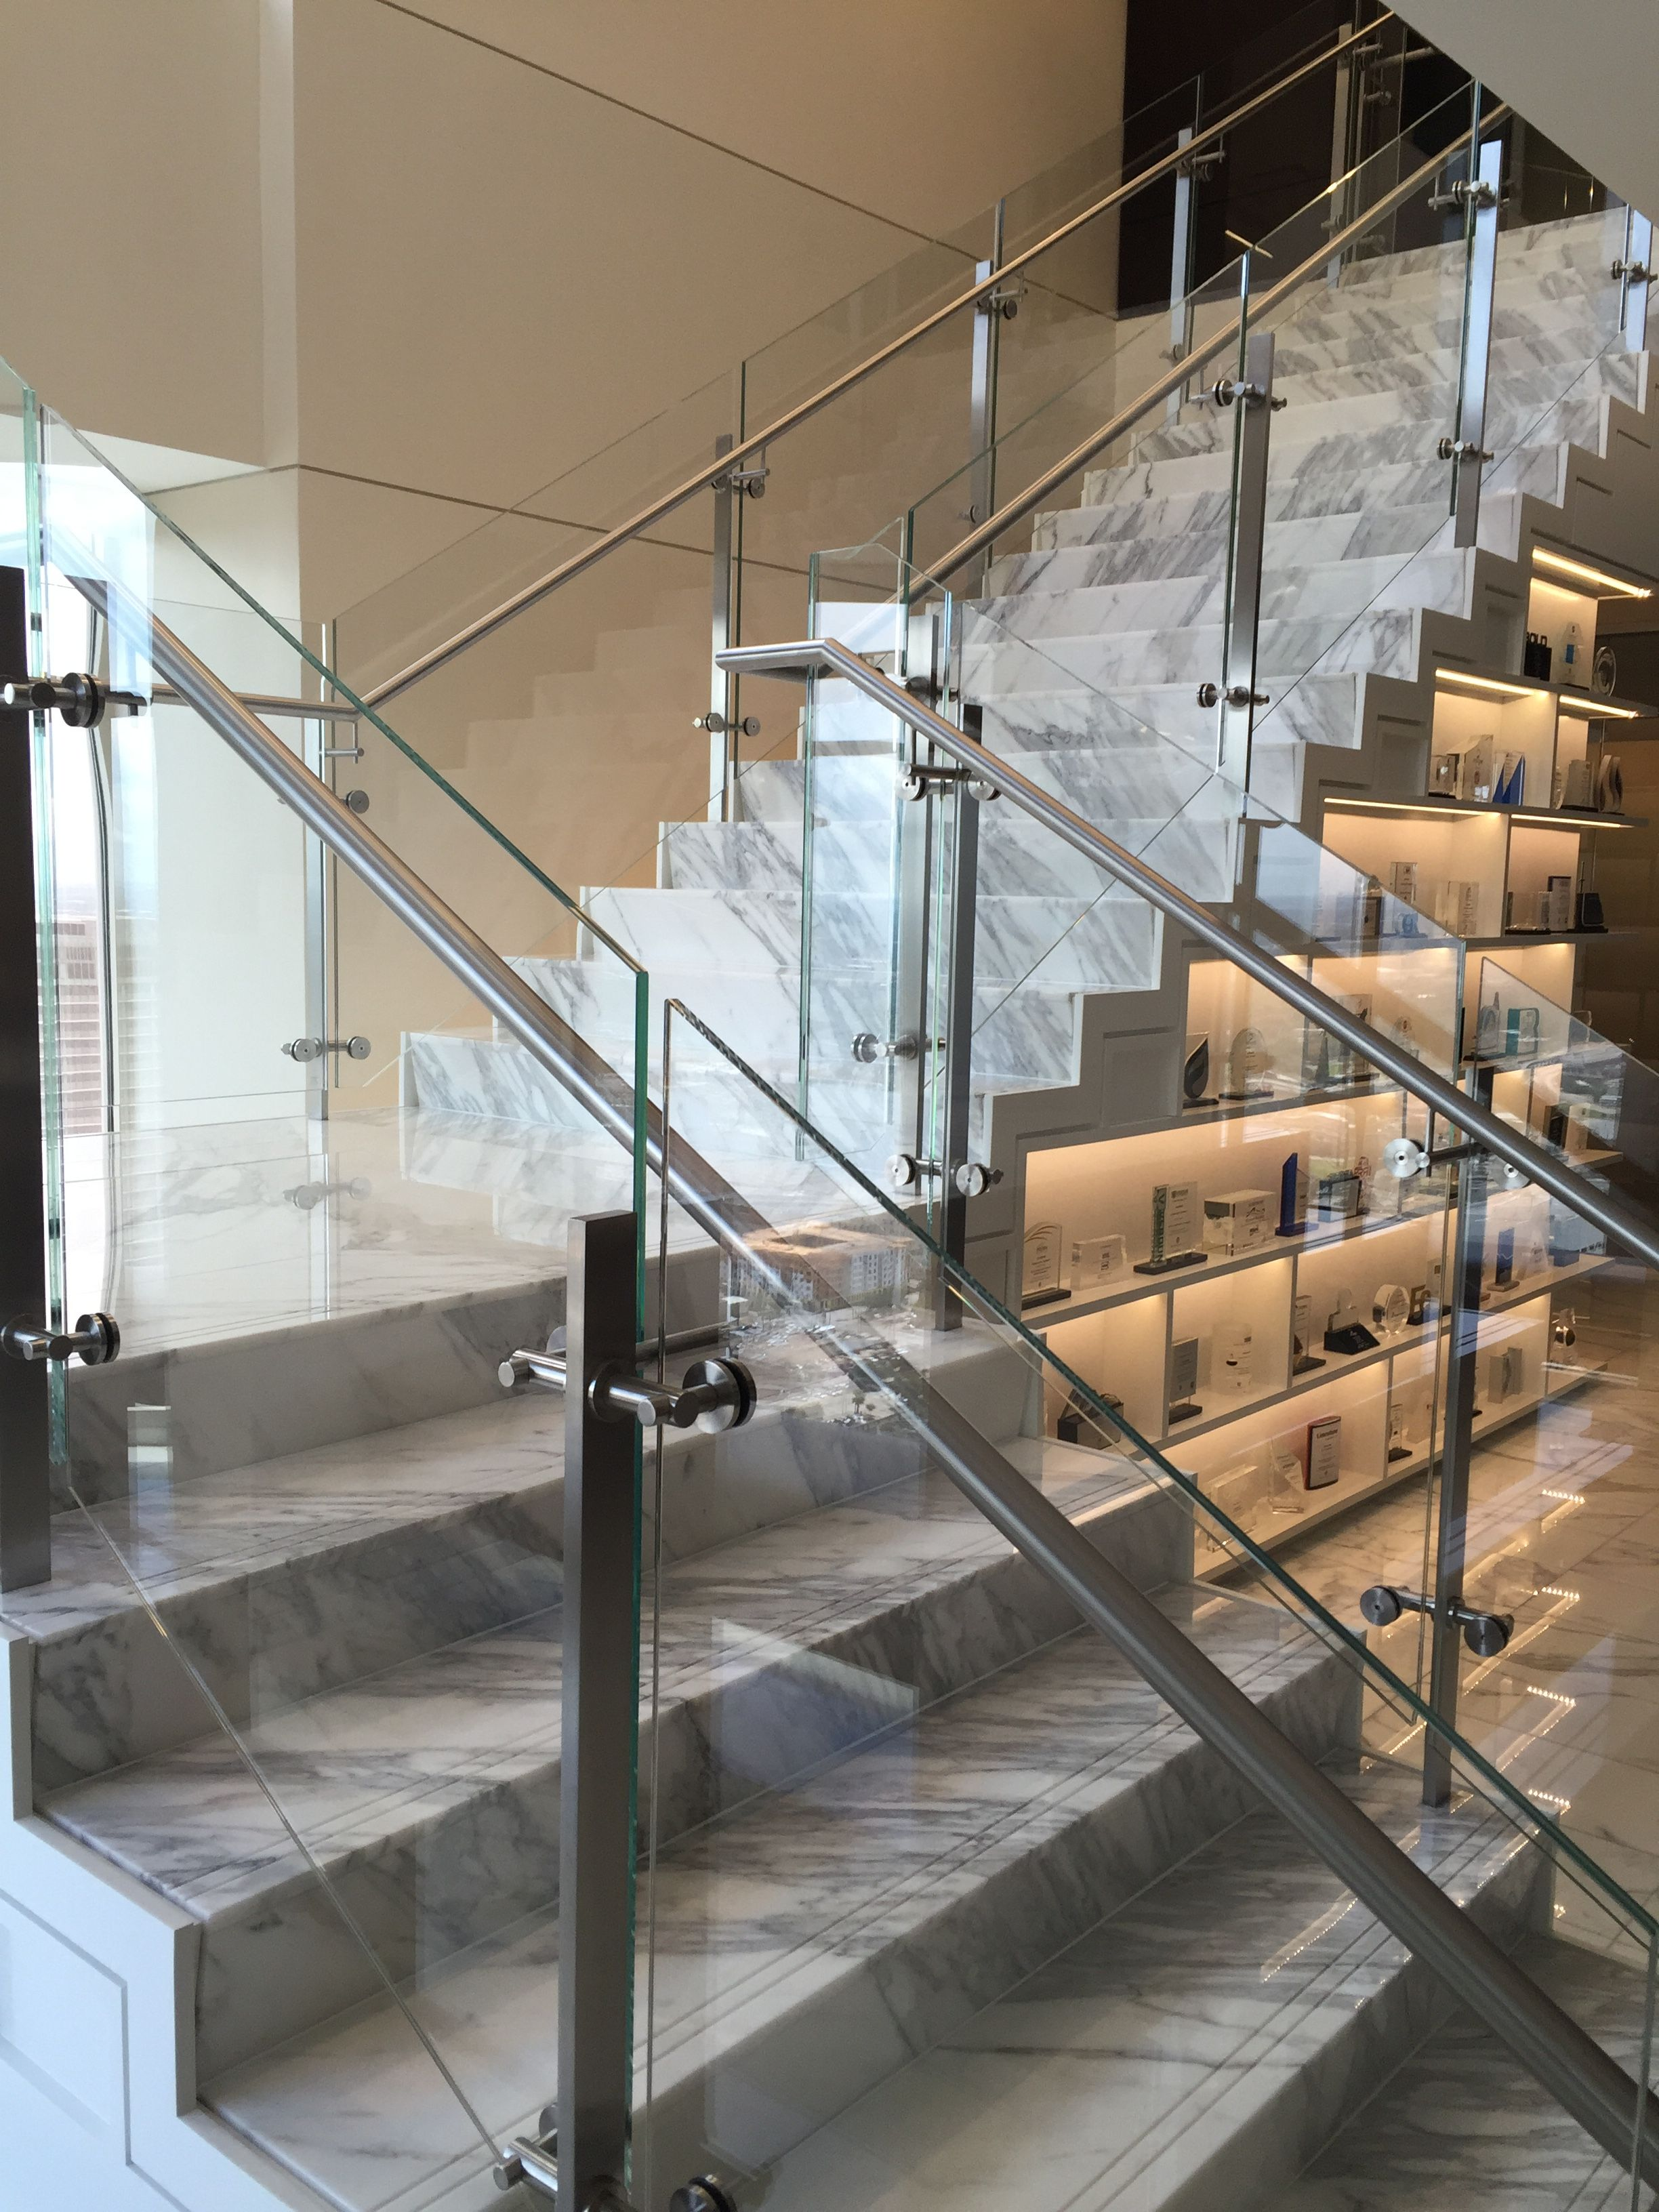 Glass Railing With Stainless Steel Glass Clamps Glass Railing   Stainless Steel Staircase Railing With Glass   Infill   Custom Glass   Indoor   Panel   Modern